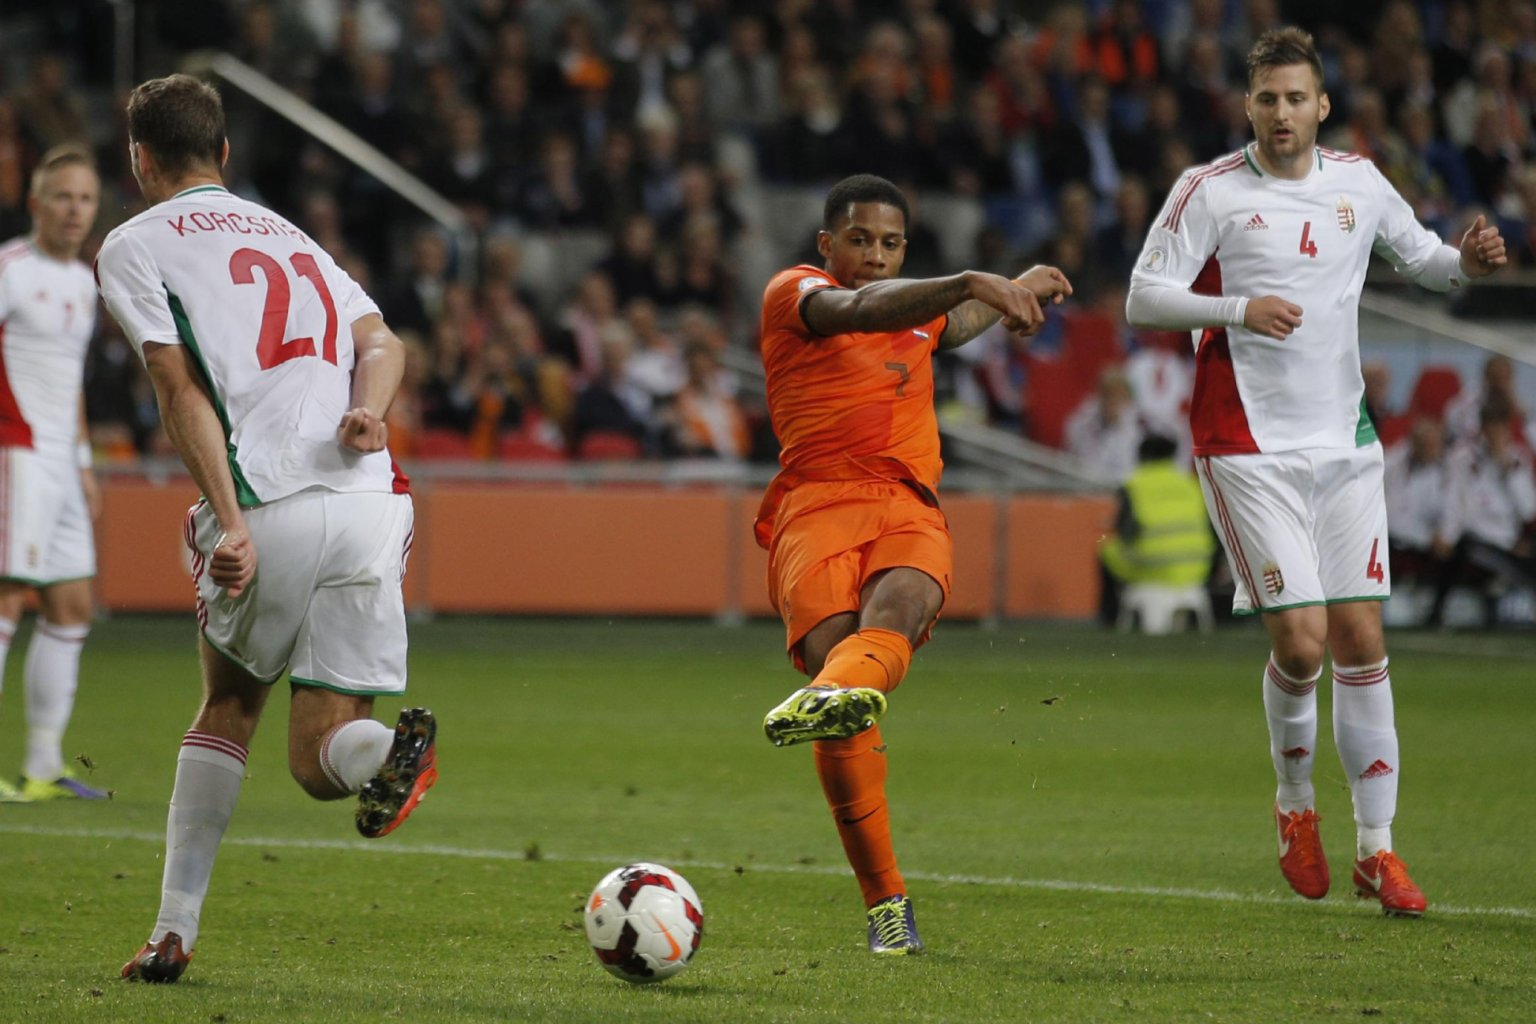 Netherlands' Jeremain Lens, center, scores 3-0 passing Hungary's Zsolt Korcsmar, left, and Hungary's Tamas Kadar, right, during the Group D World Cup qualifying...